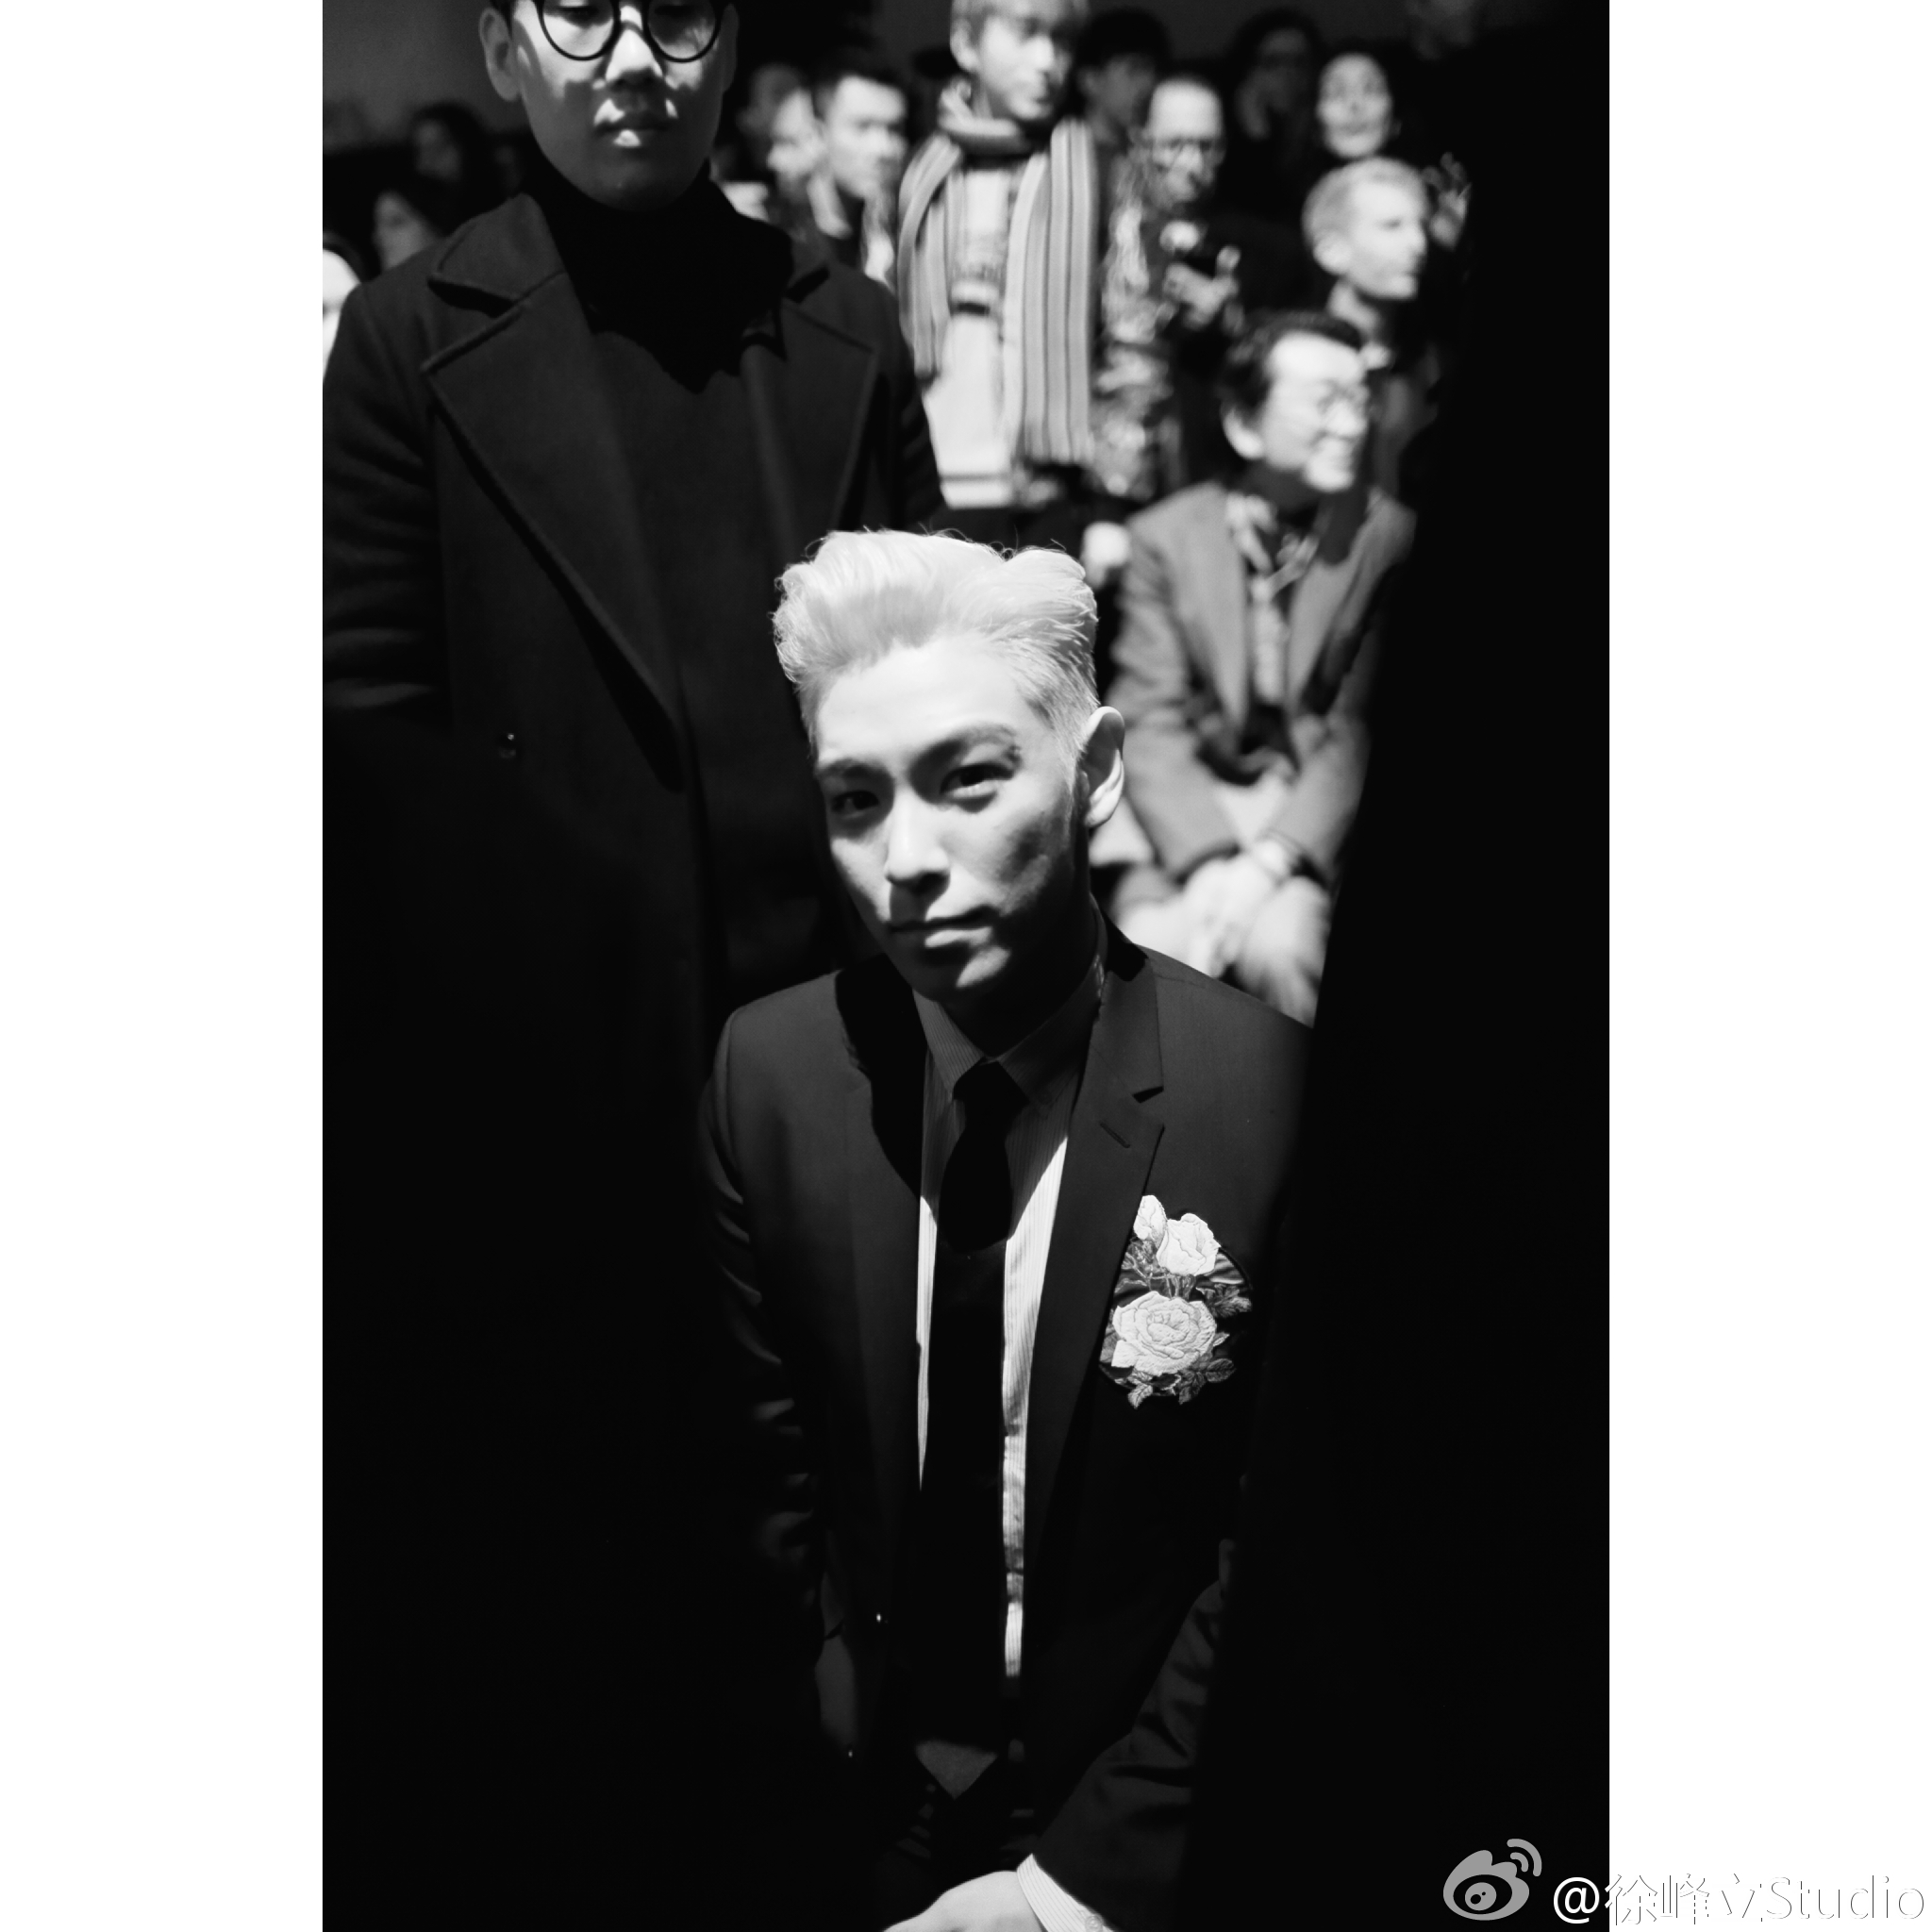 TOP - Dior Homme Fashion Show - 23jan2016 - 徐峰立Studio - 03